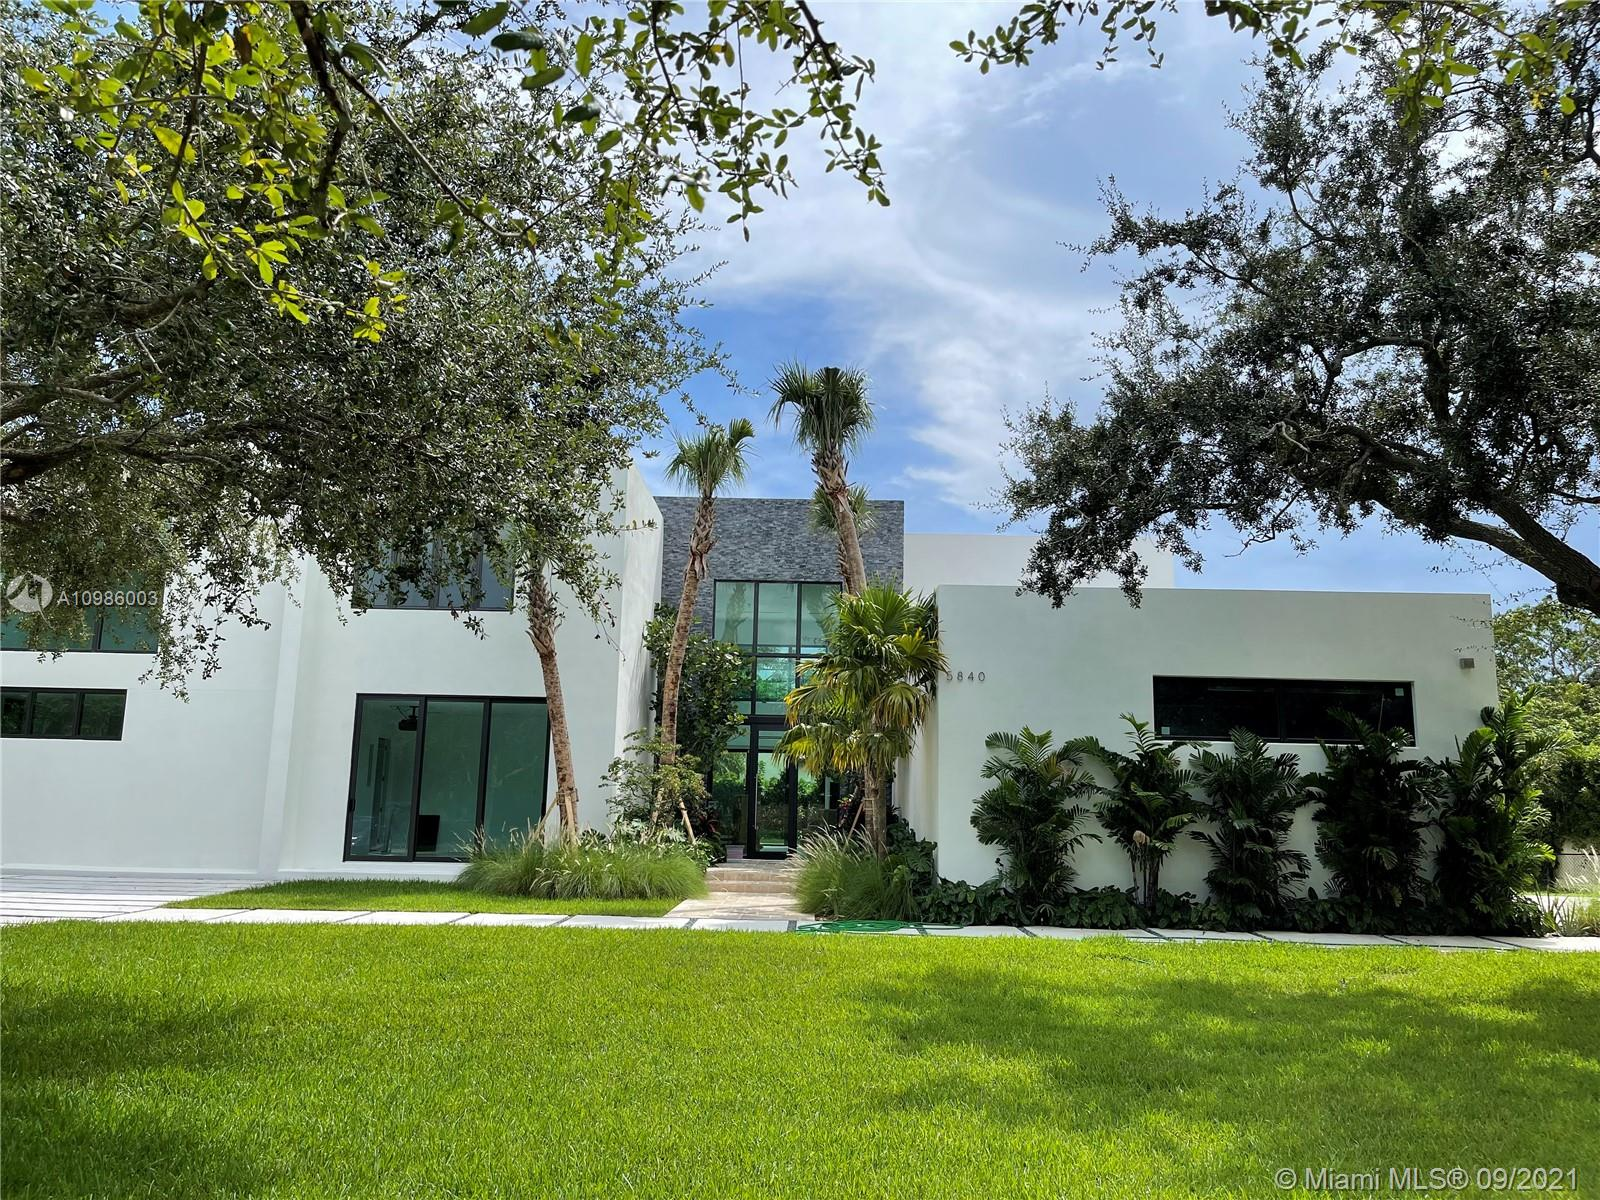 5840 Moss Ranch Road, Pinecrest, Florida 33156, 6 Bedrooms Bedrooms, ,7 BathroomsBathrooms,Residential,For Sale,5840 Moss Ranch Road,A10986003